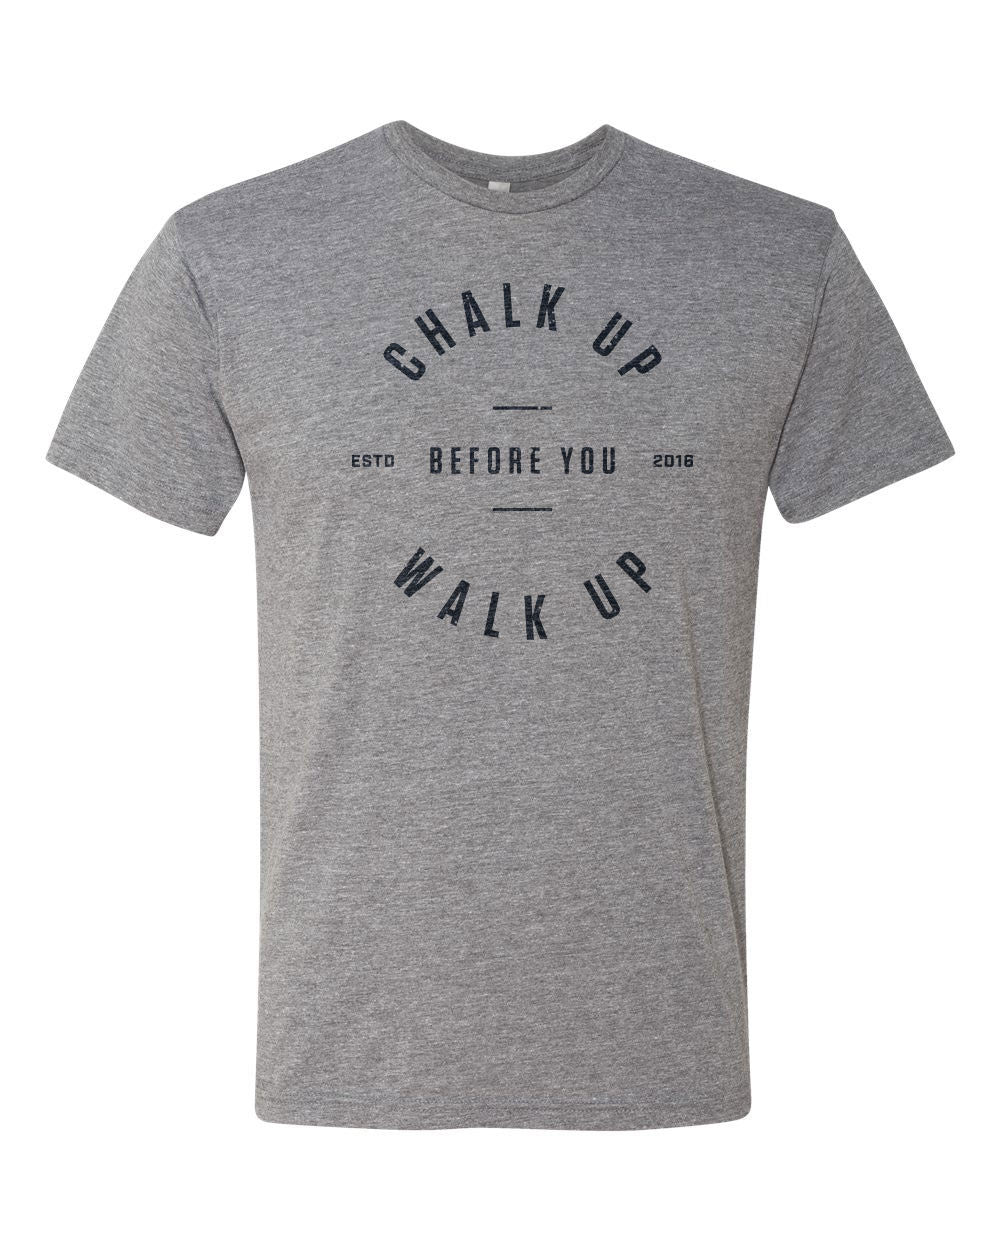 Chalk Up Before You Walk Up Tee - Front